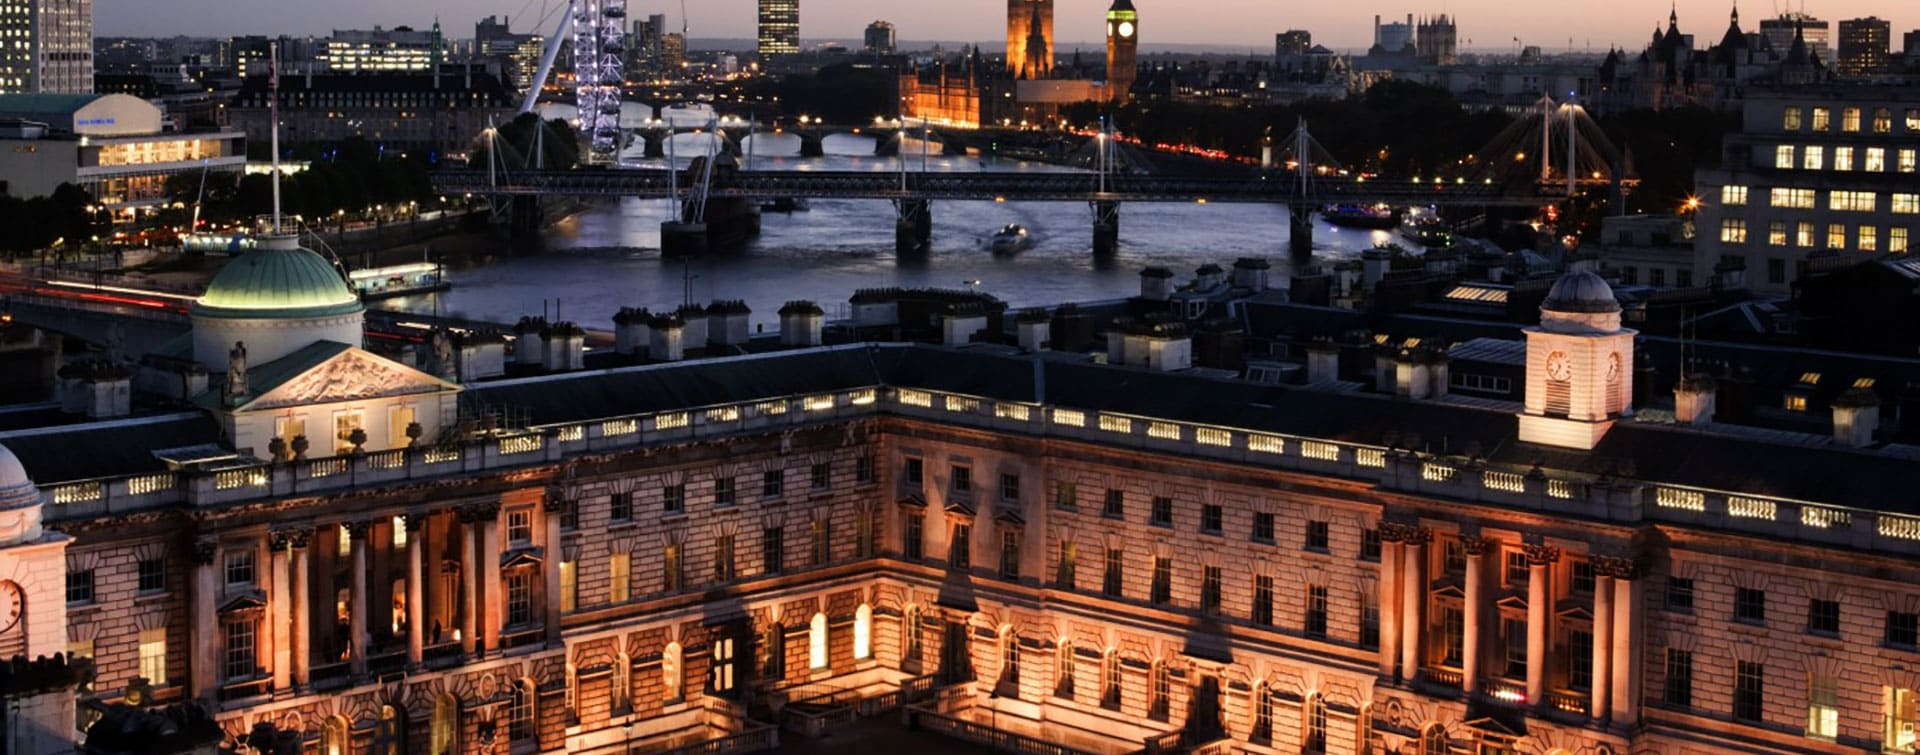 KCL - UKRI Centre for Doctoral Training in Safe and Trusted Artificial Intelligence